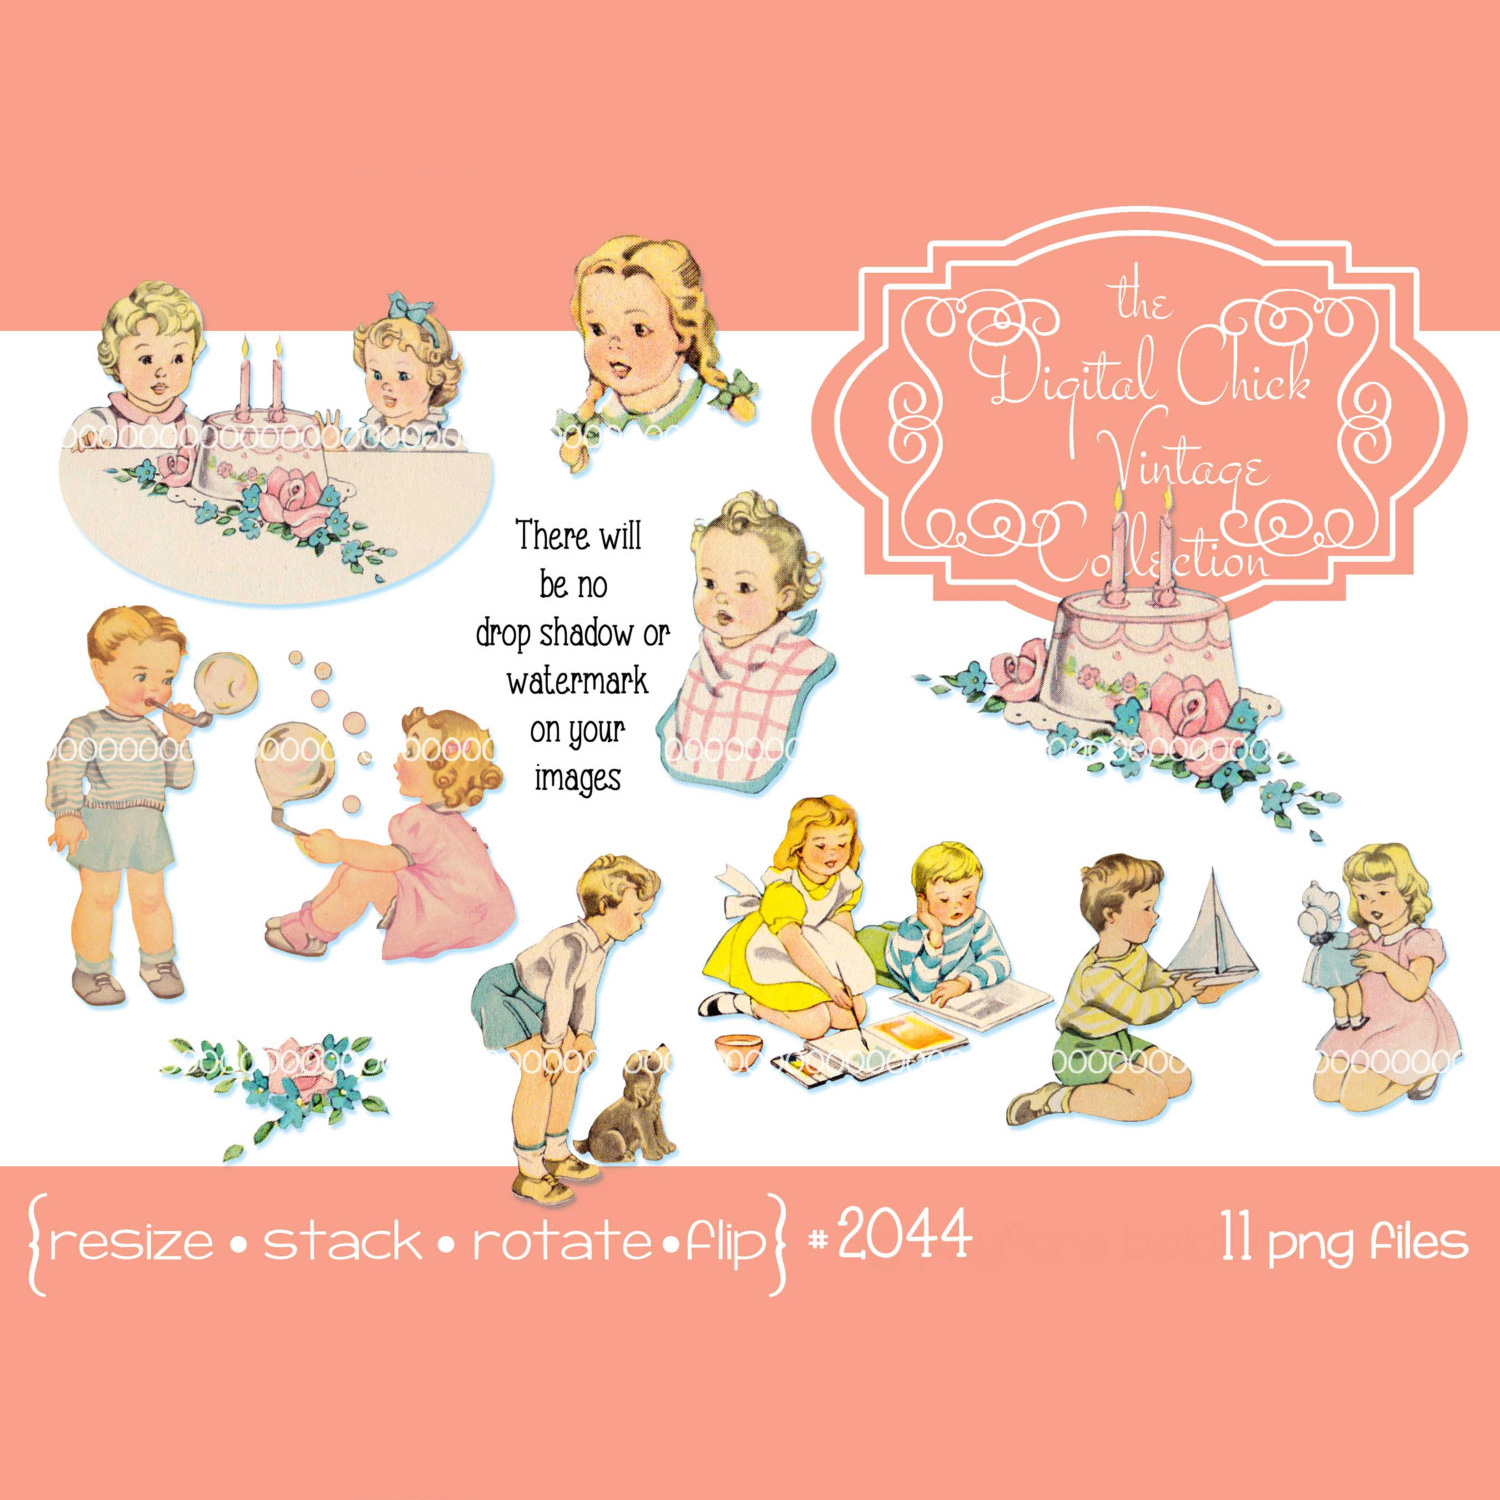 Vintage Birthday Cake Clipart, Toddler, Child, Children, Kid, Little Girl,  Little Boy.